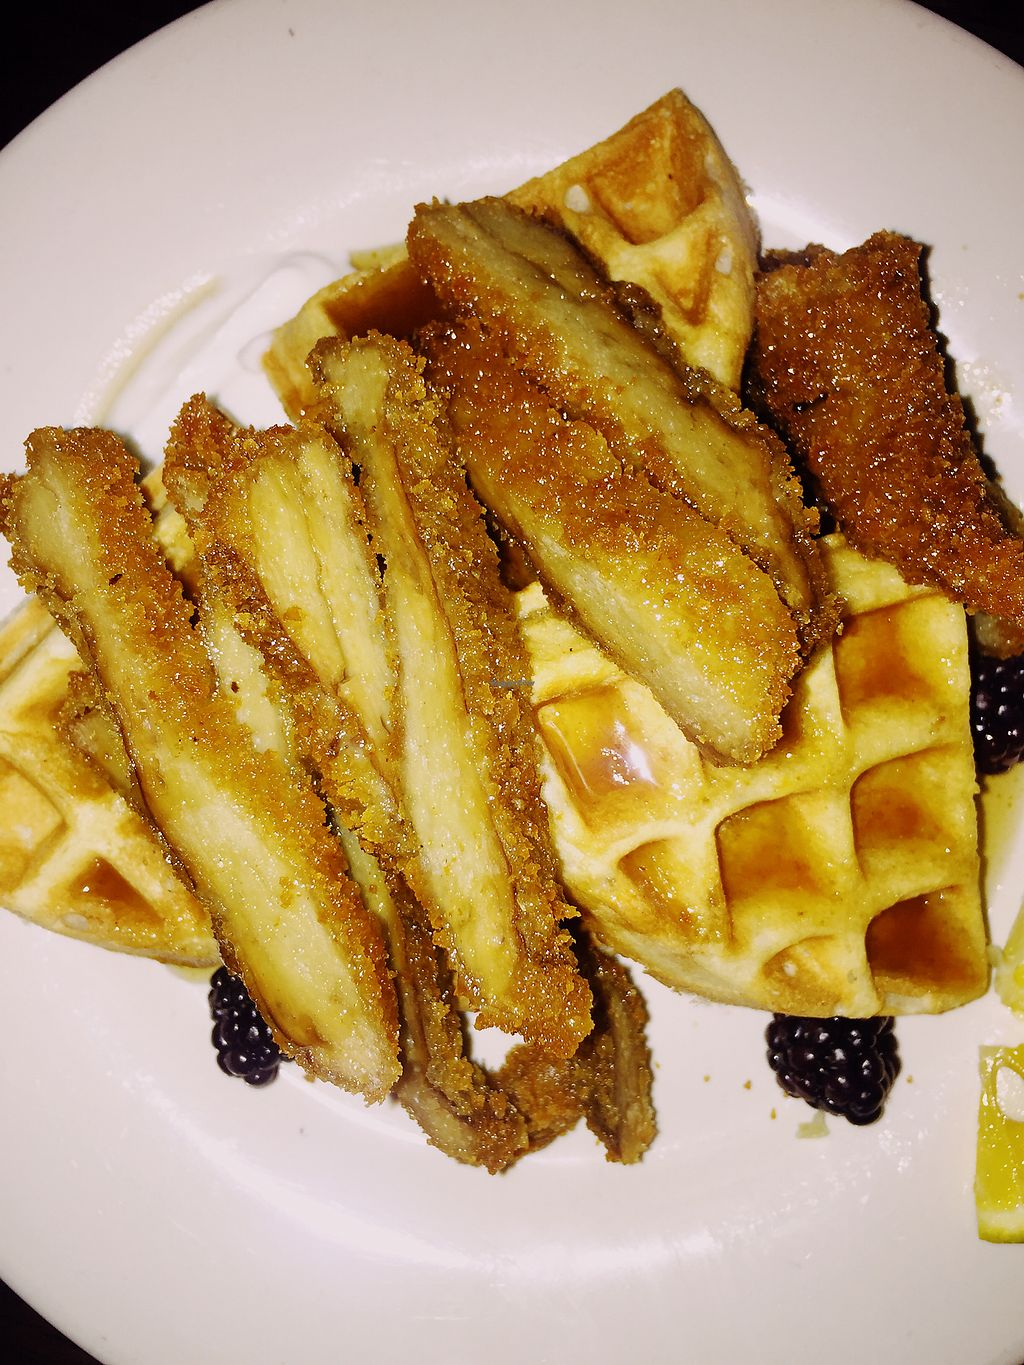 """Photo of Cafe Sunflower - Buckhead  by <a href=""""/members/profile/terrywashere"""">terrywashere</a> <br/>chicken and waffles.  <br/> July 3, 2017  - <a href='/contact/abuse/image/1875/276320'>Report</a>"""